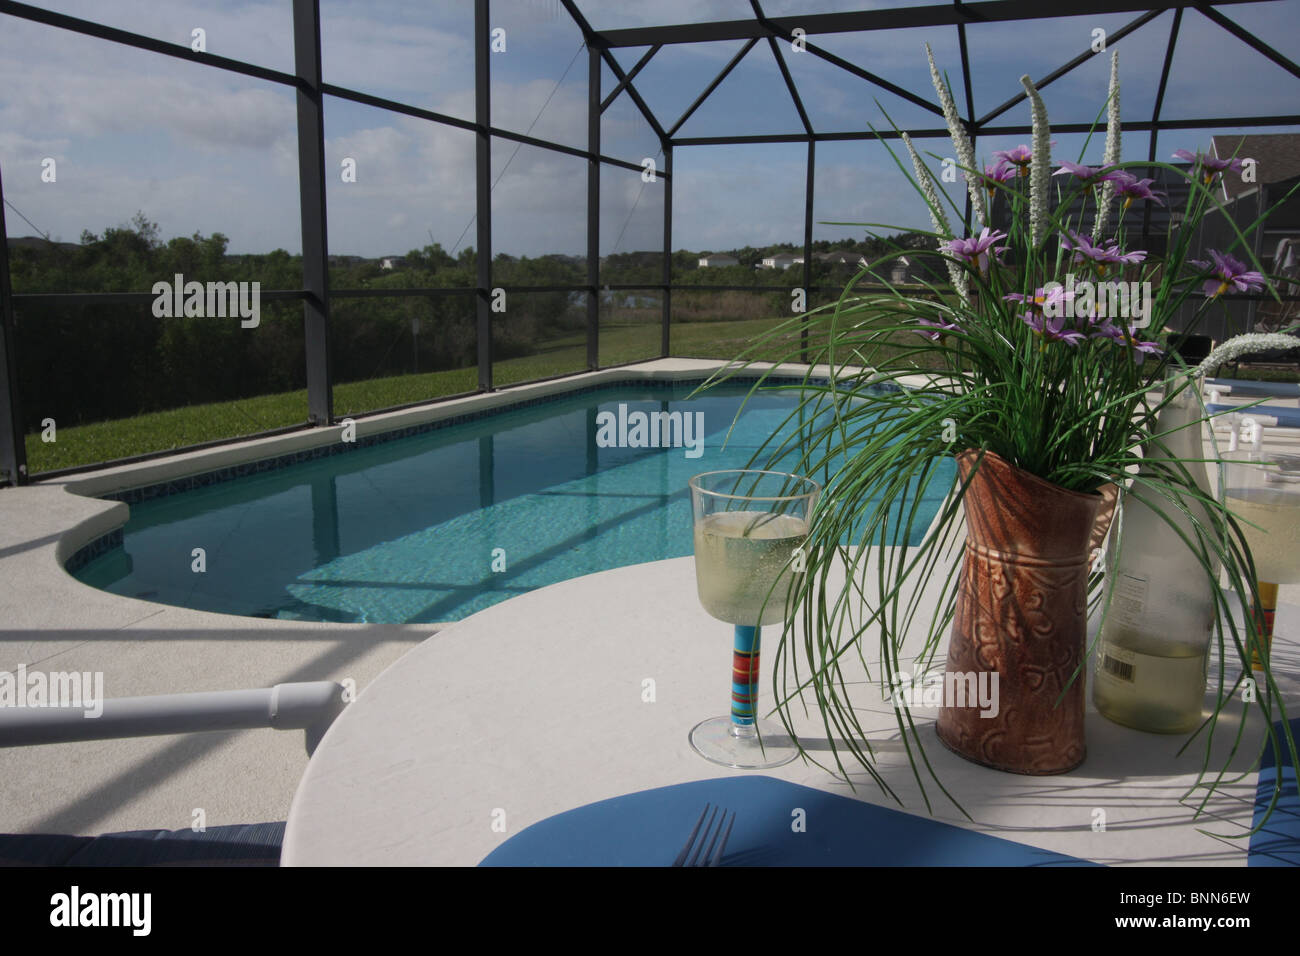 Private Swimming Pool And Patio Area With Insect Mesh Cover, Taken On  Vacation In Florida.